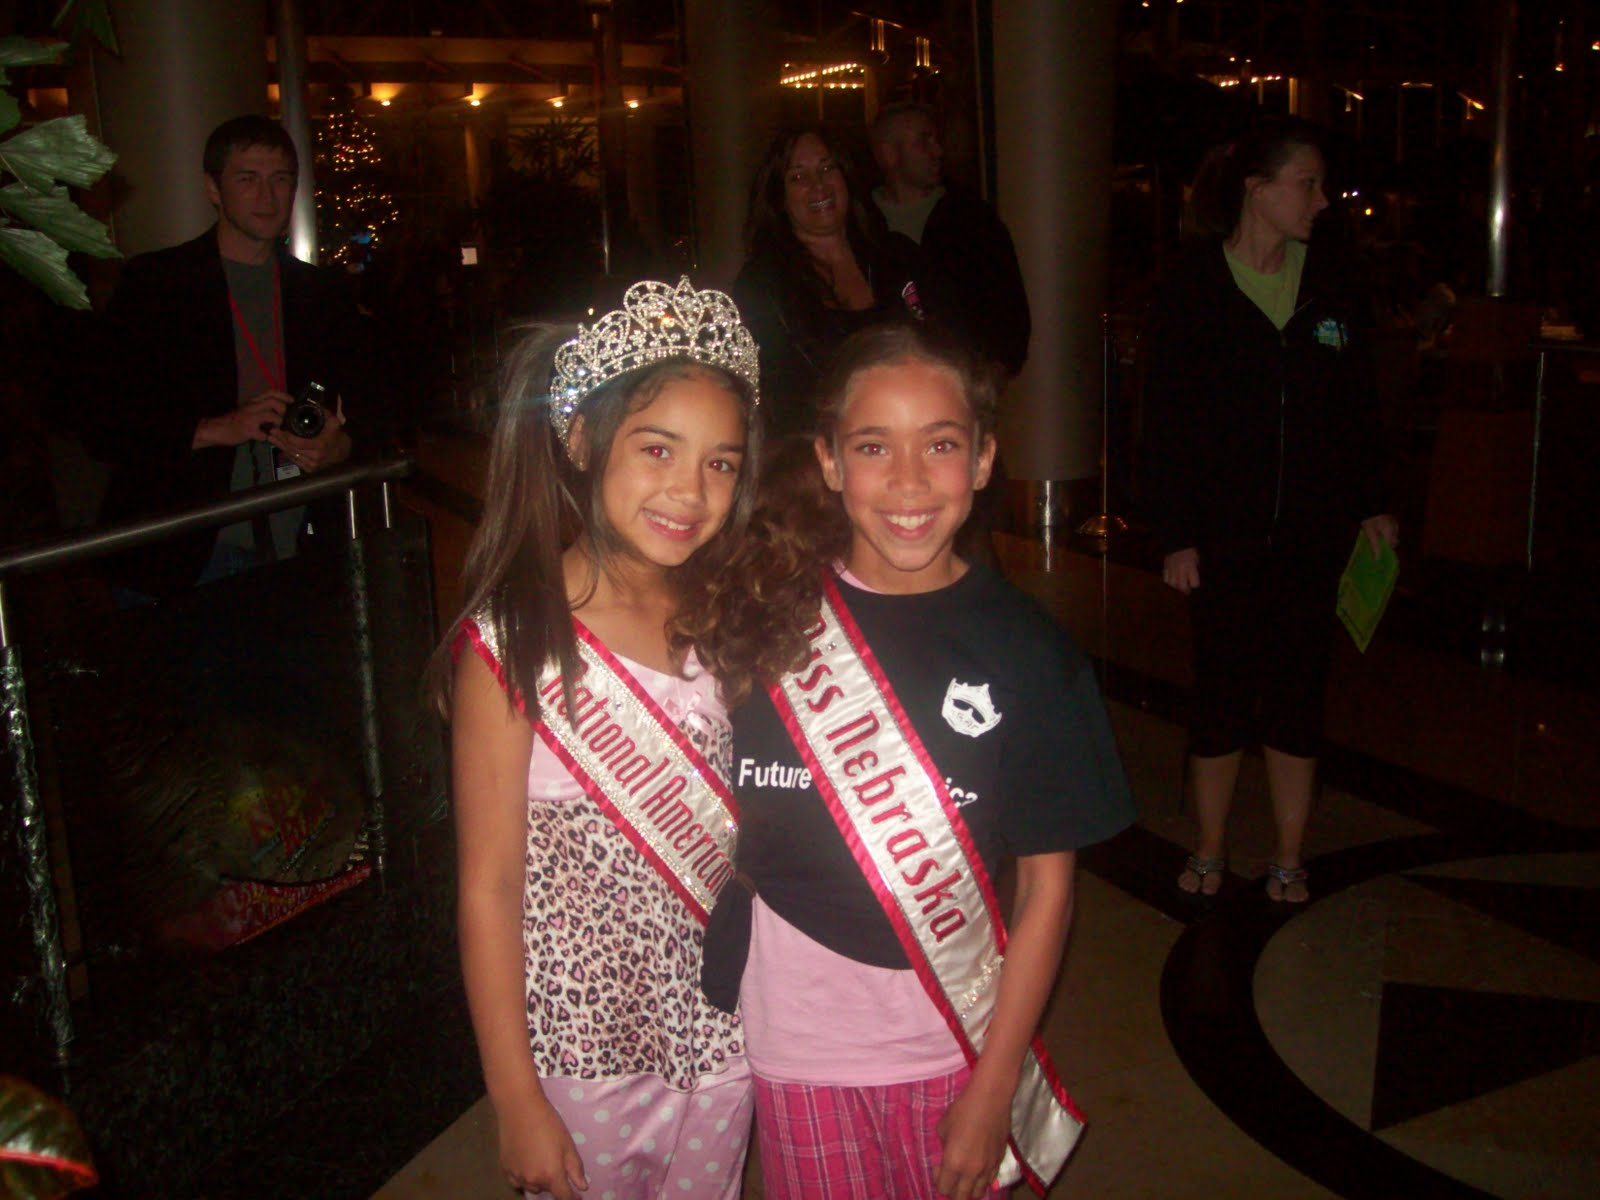 NAMiss Rocks Blog: Saying farewell is Miss Nebraska Jr. Preteenpreteen angels